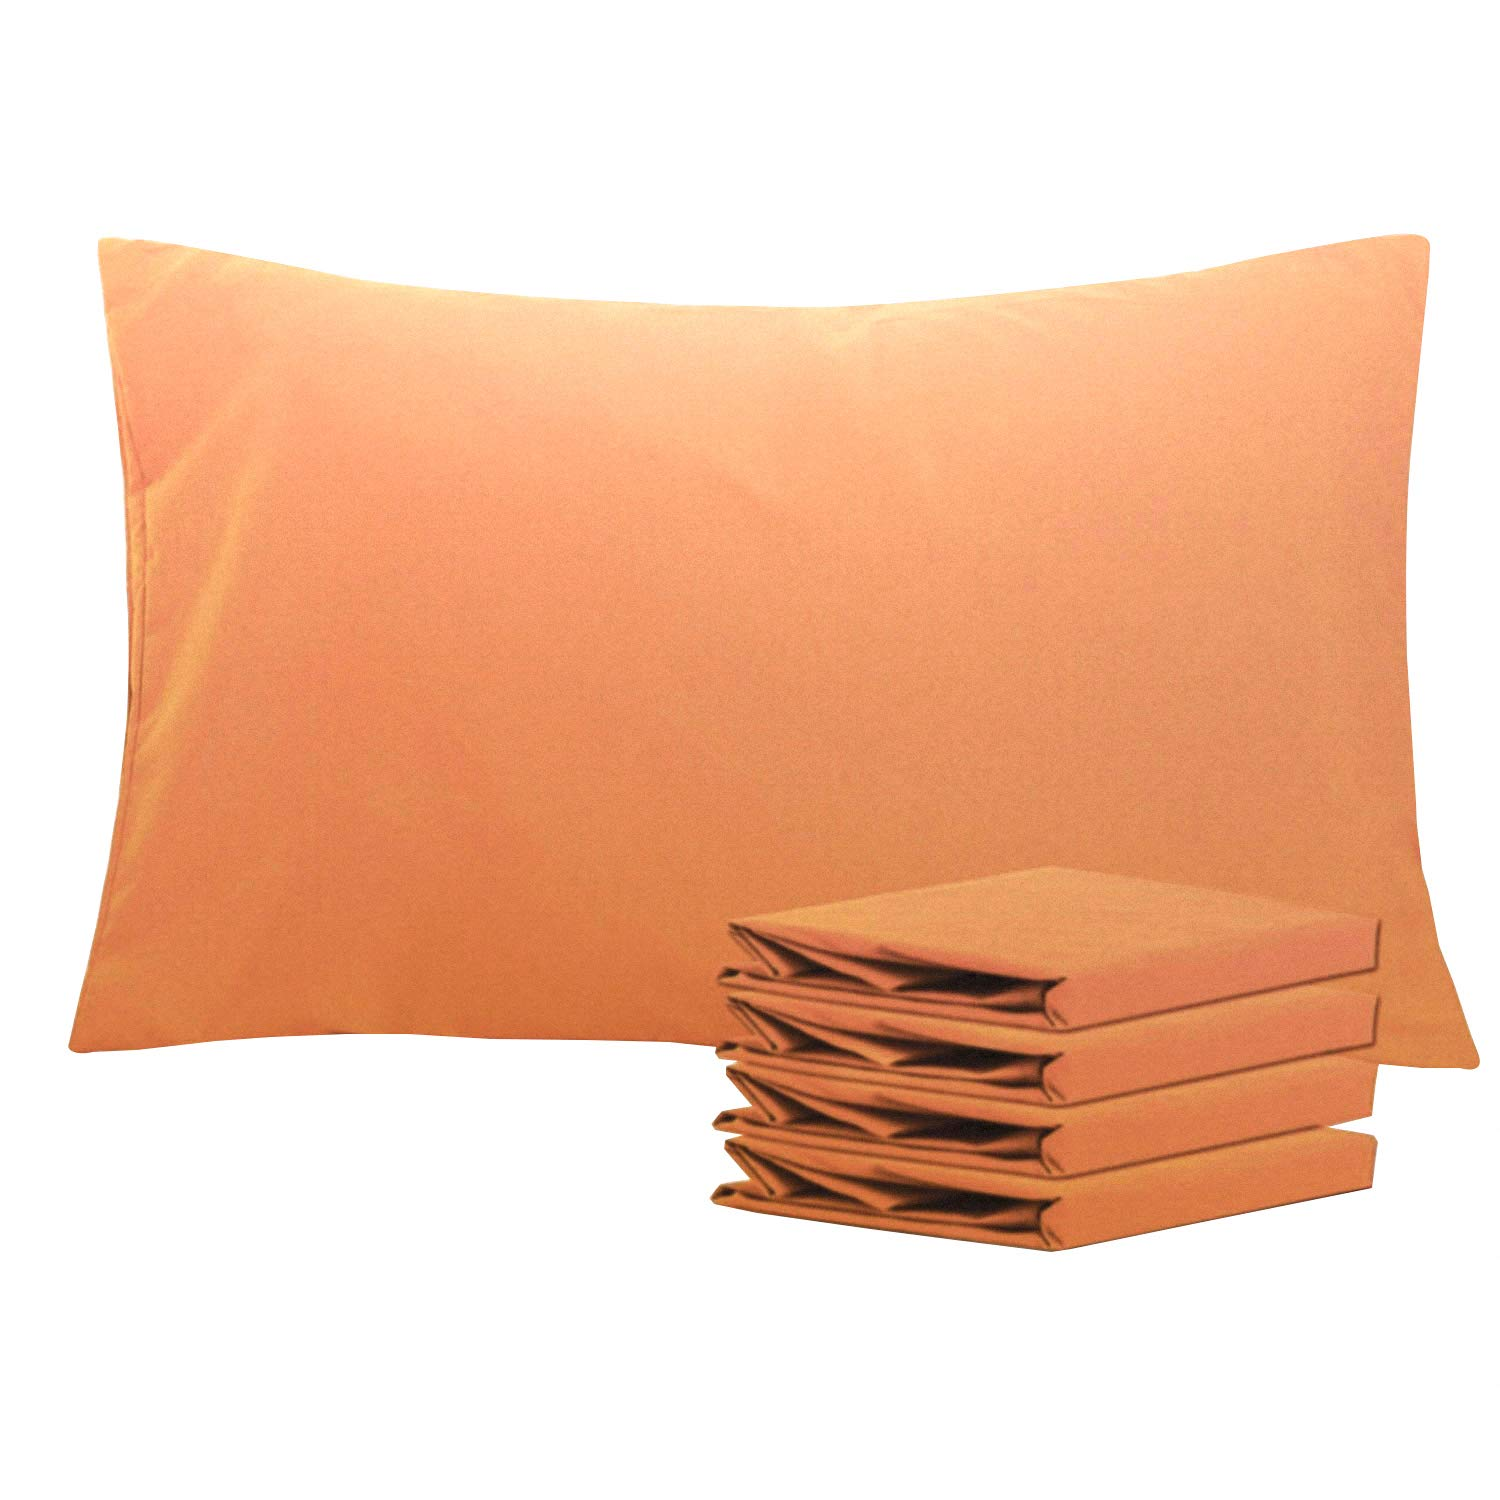 """NTBAY Queen Pillowcases Set of 4, 100% Brushed Microfiber, Soft and Cozy, Wrinkle, Fade, Stain Resistant with Envelope Closure, 20""""x 30"""", Pale Orange"""